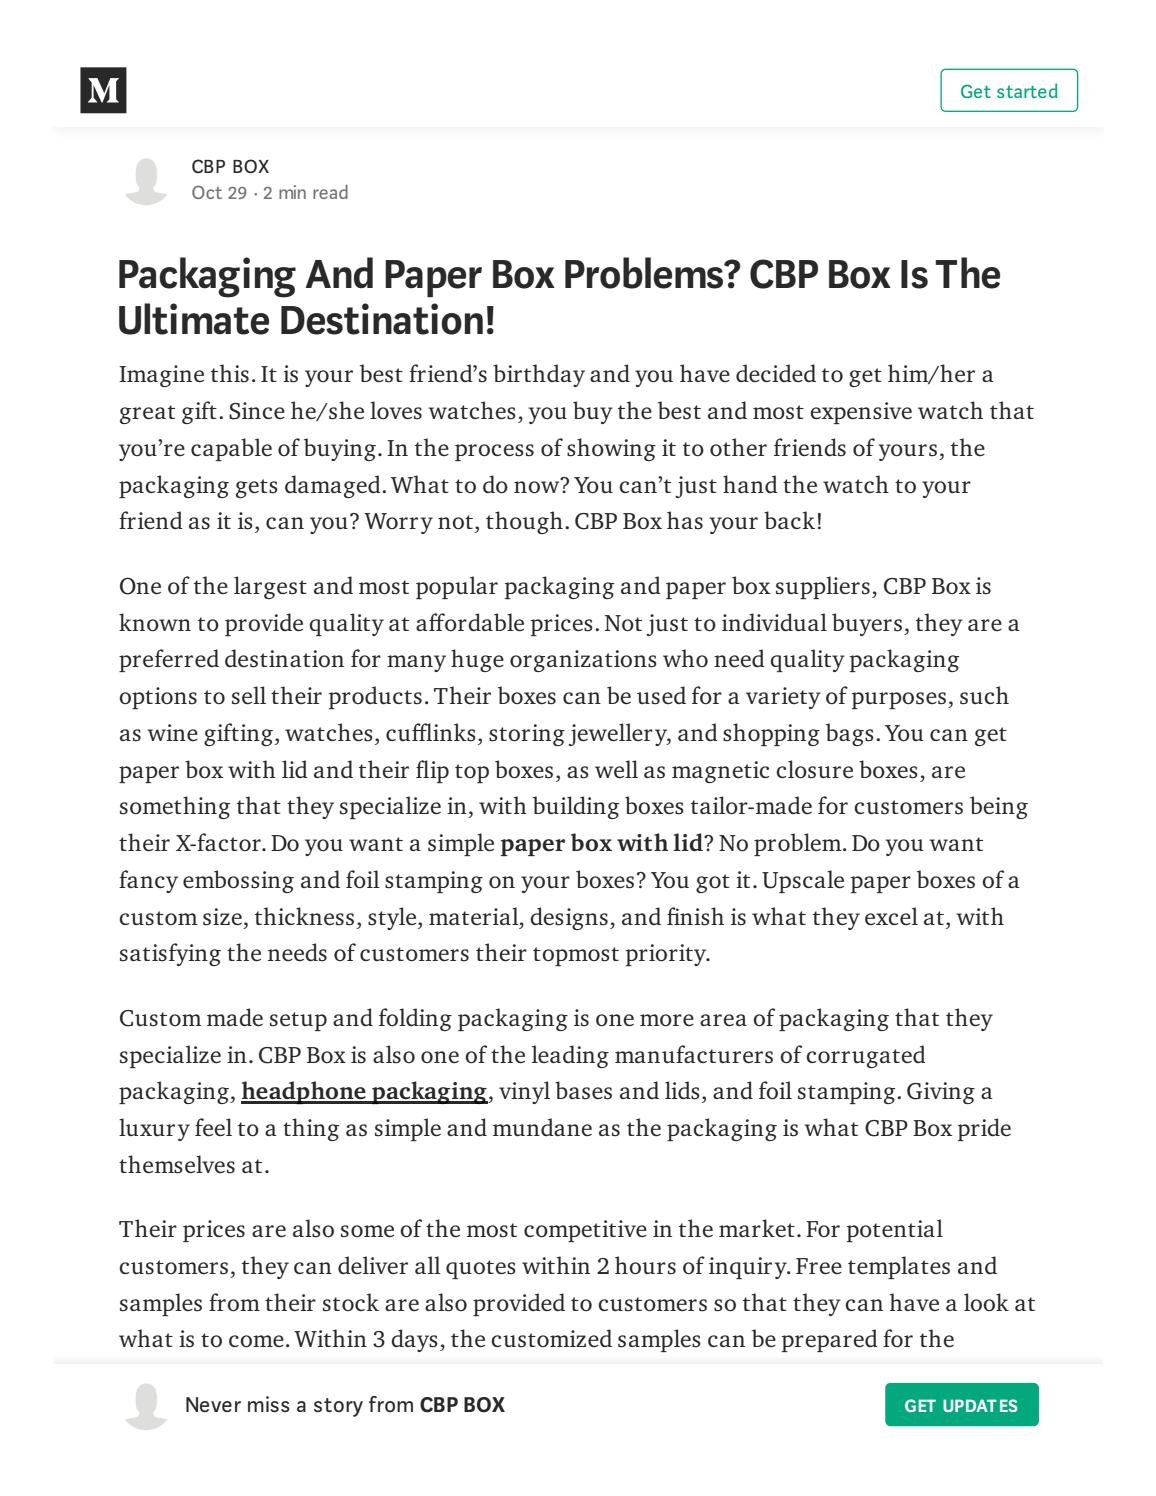 Packaging And Paper Box Problems? CBP Box Is The Ultimate